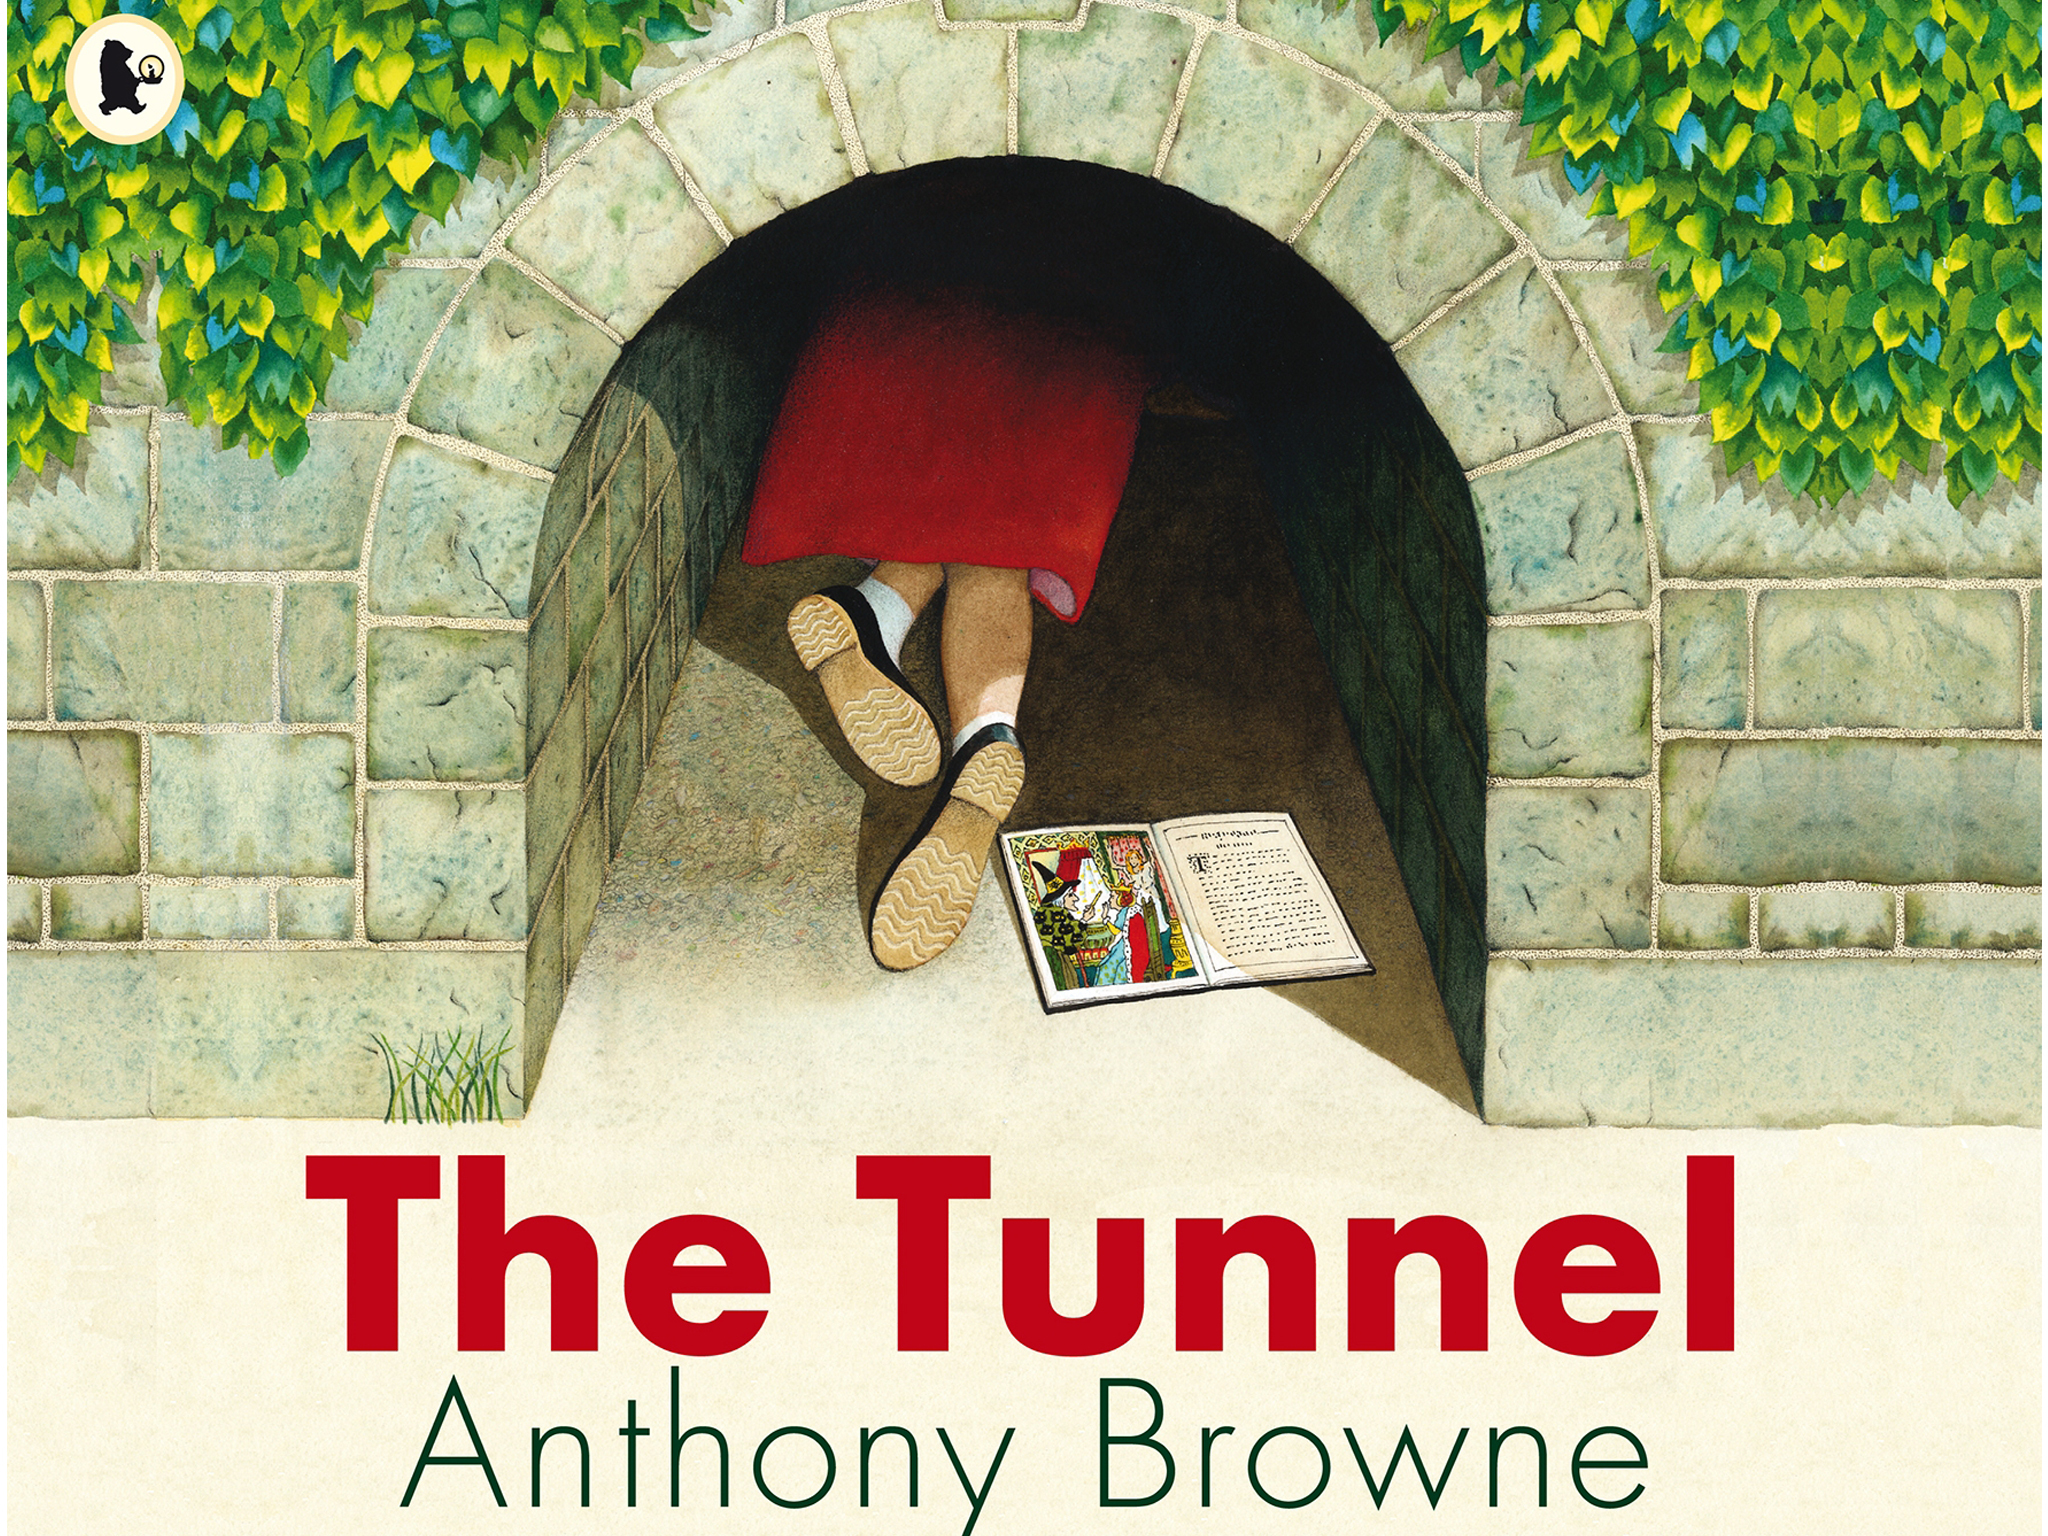 100 best children's books: The Tunnel